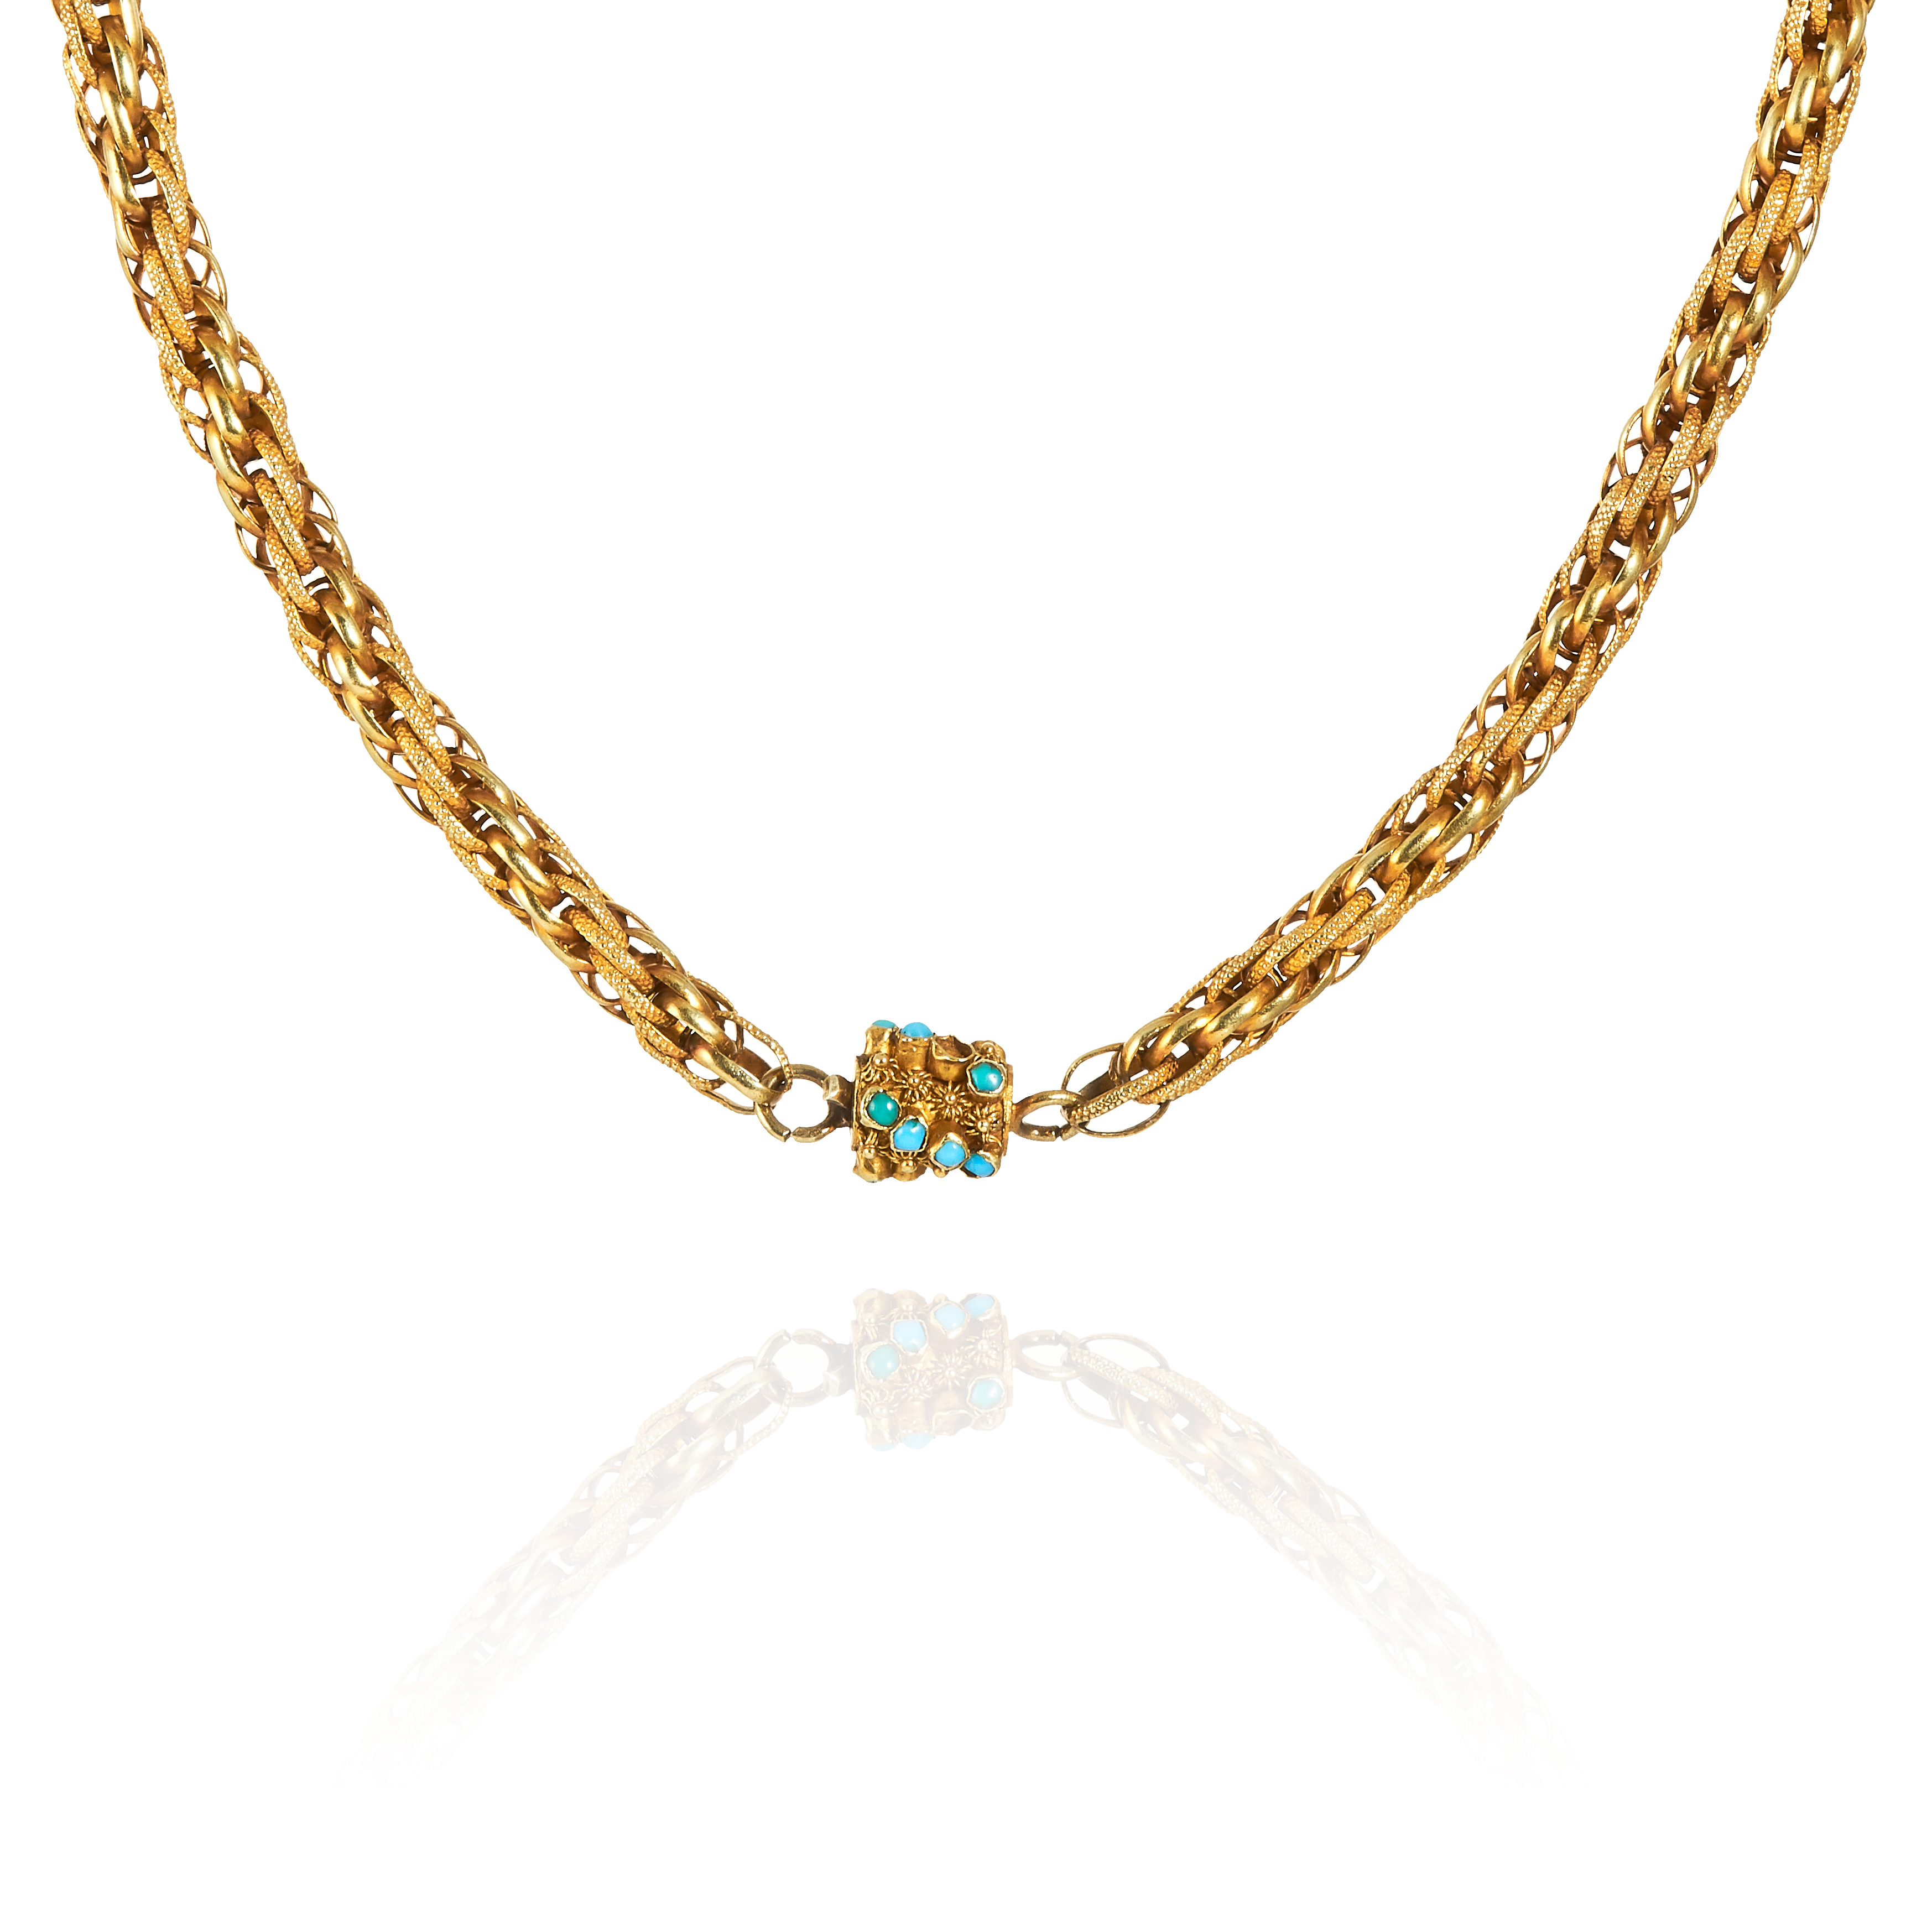 AN ANTIQUE TURQUOISE NECKLACE / BRACELET in high carat yellow gold, comprising of interwoven gold